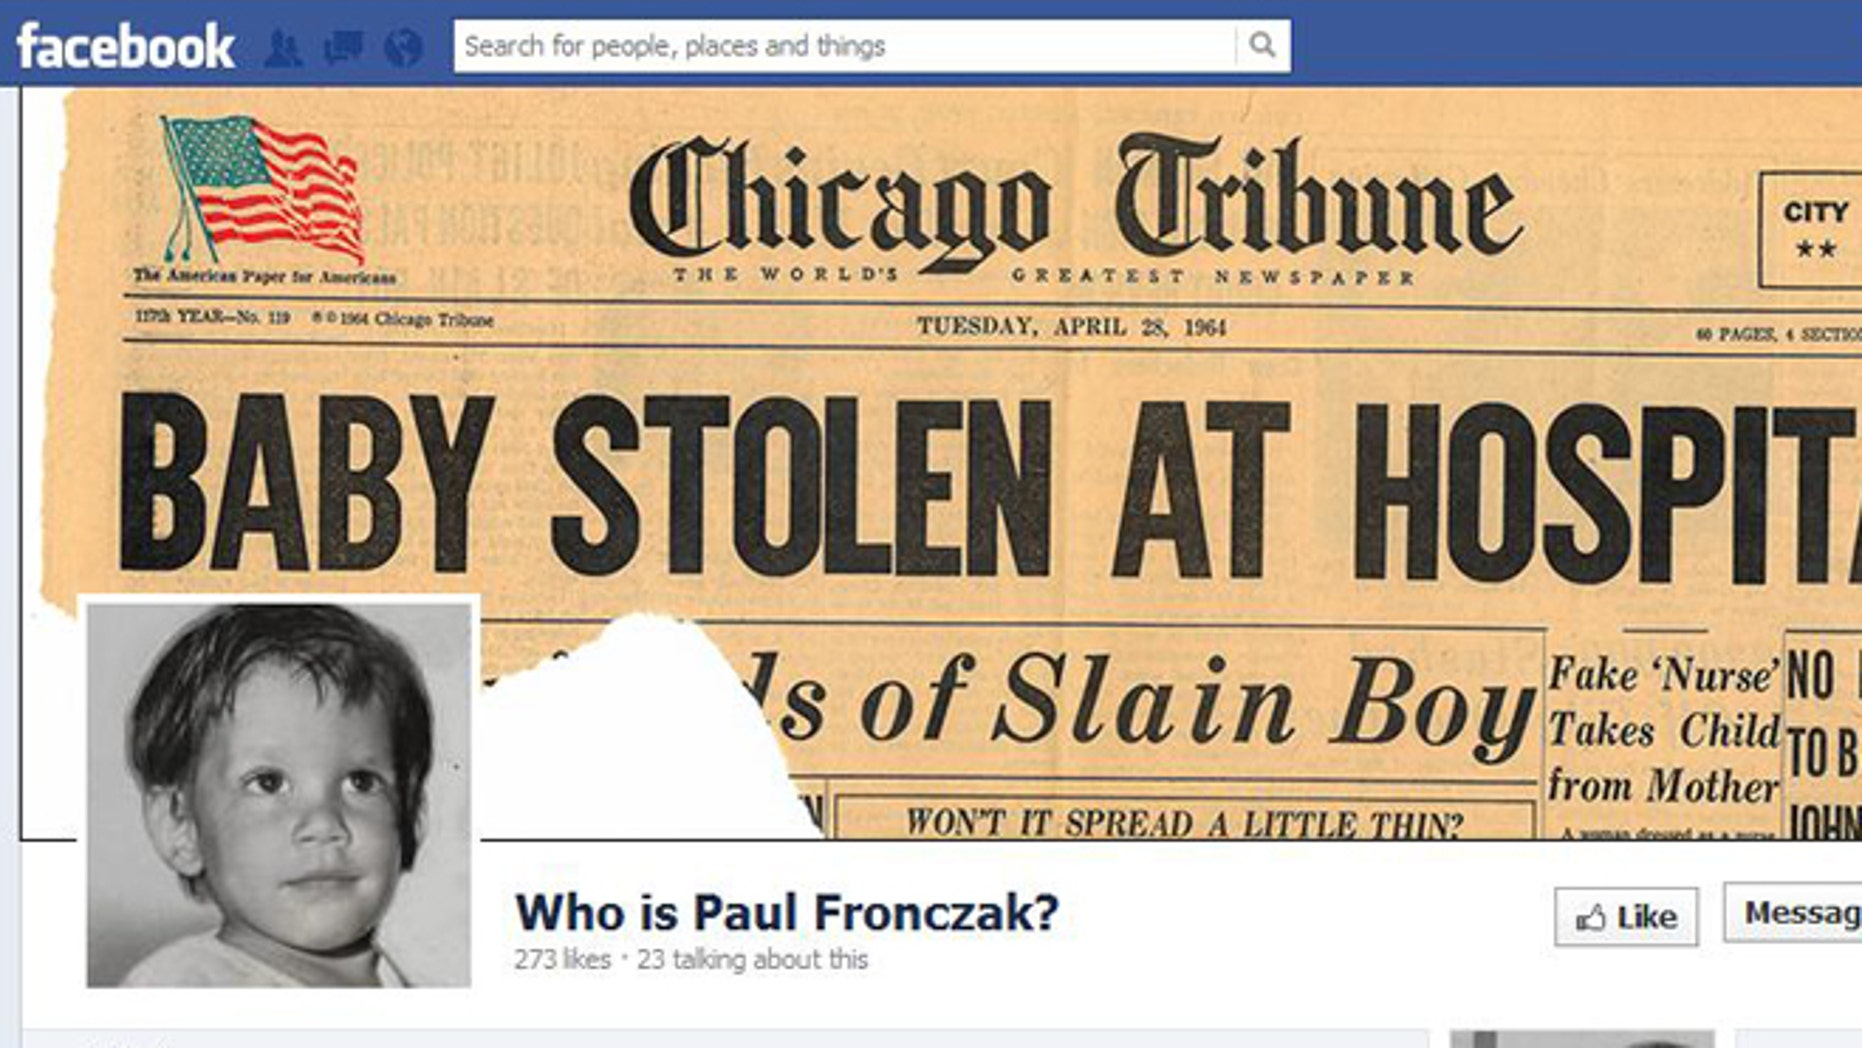 A Facebook page assisting in the identification of Paul Fronczak.